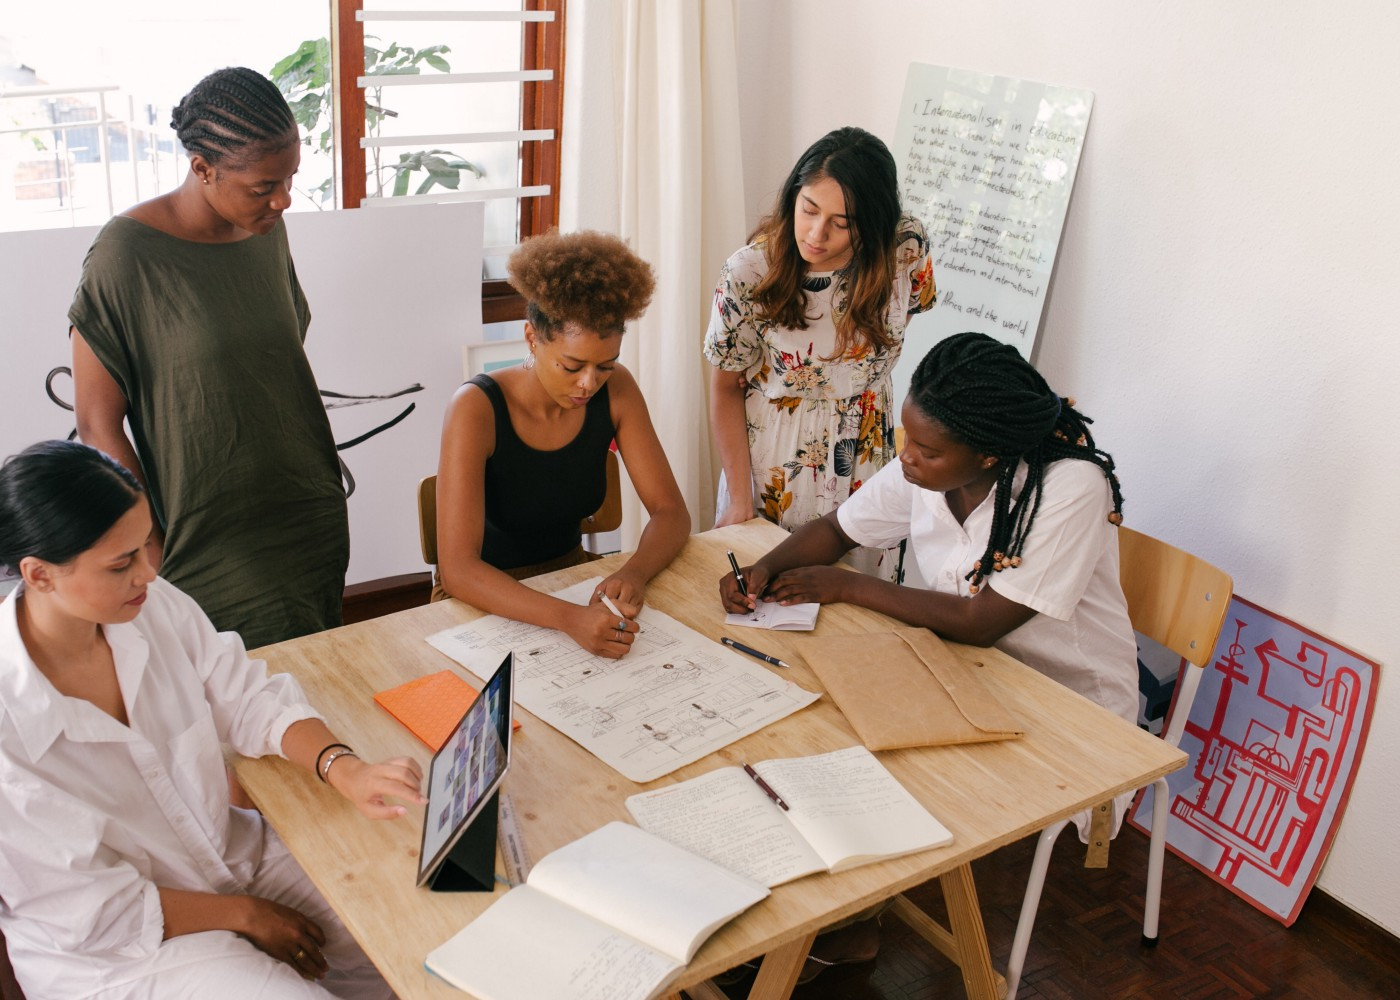 A group of five women sit and stand around a table as they collaborate on product wireframes.